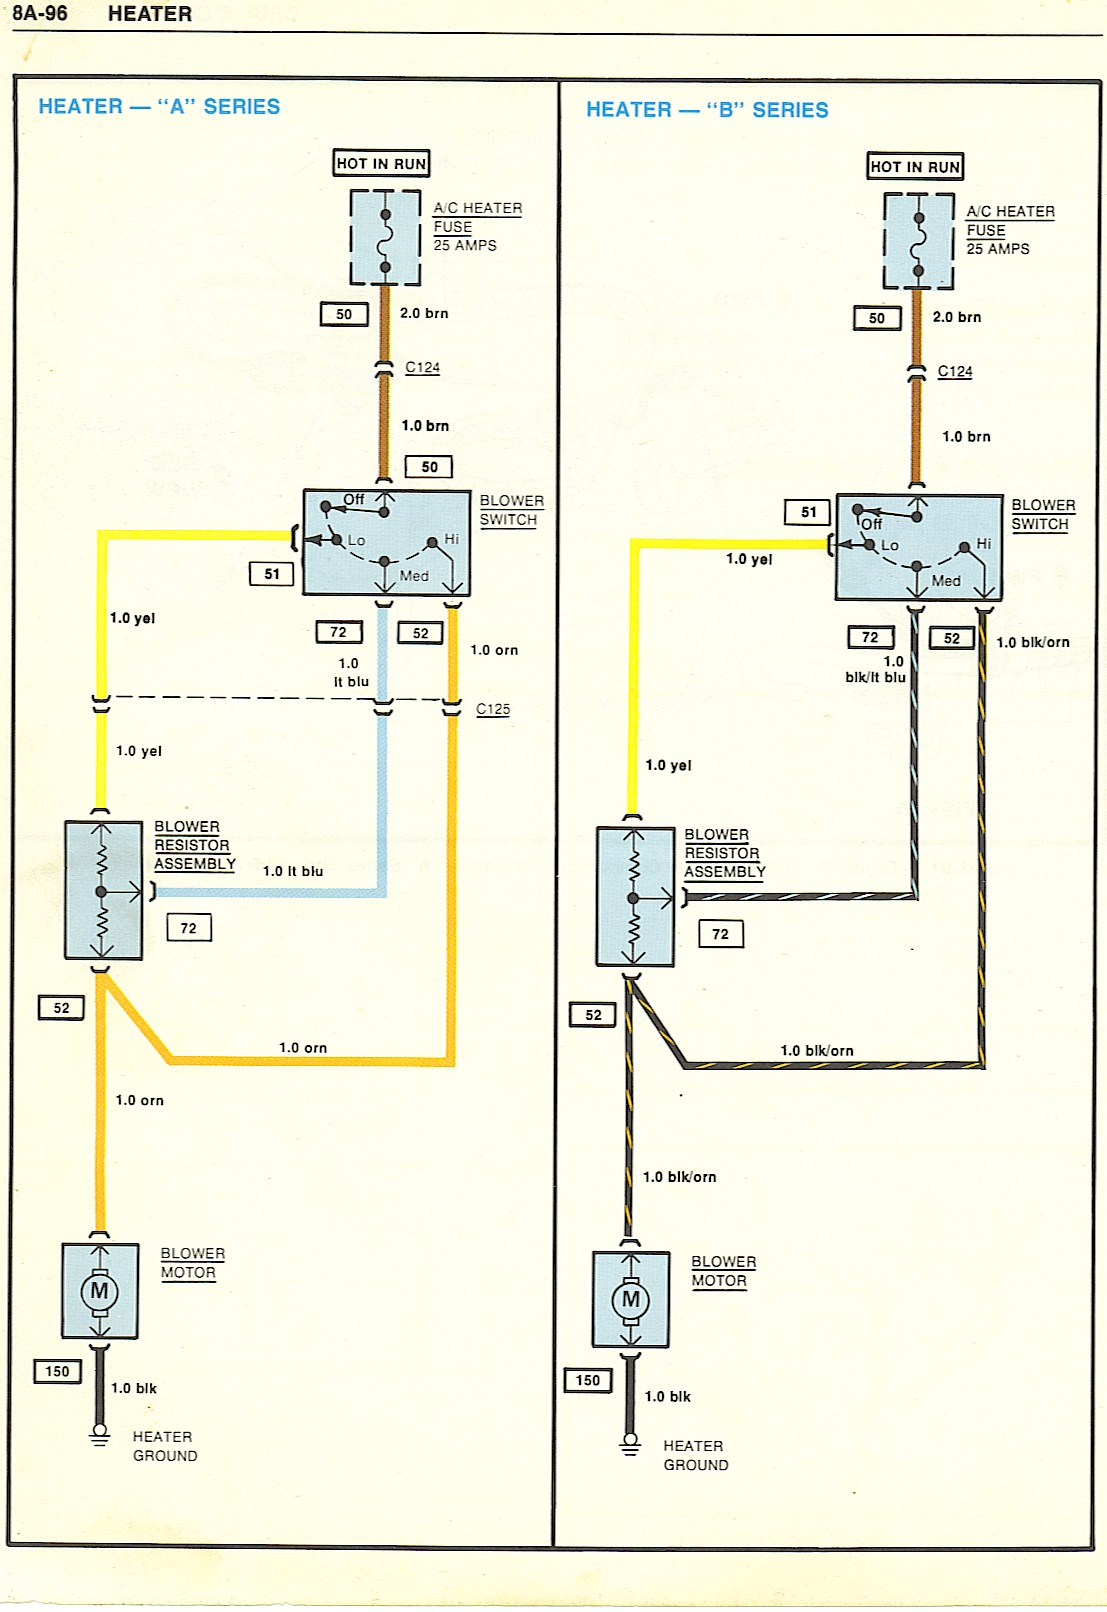 Heater wiring diagrams 1972 Chevelle Engine Wiring Diagram at beritabola.co